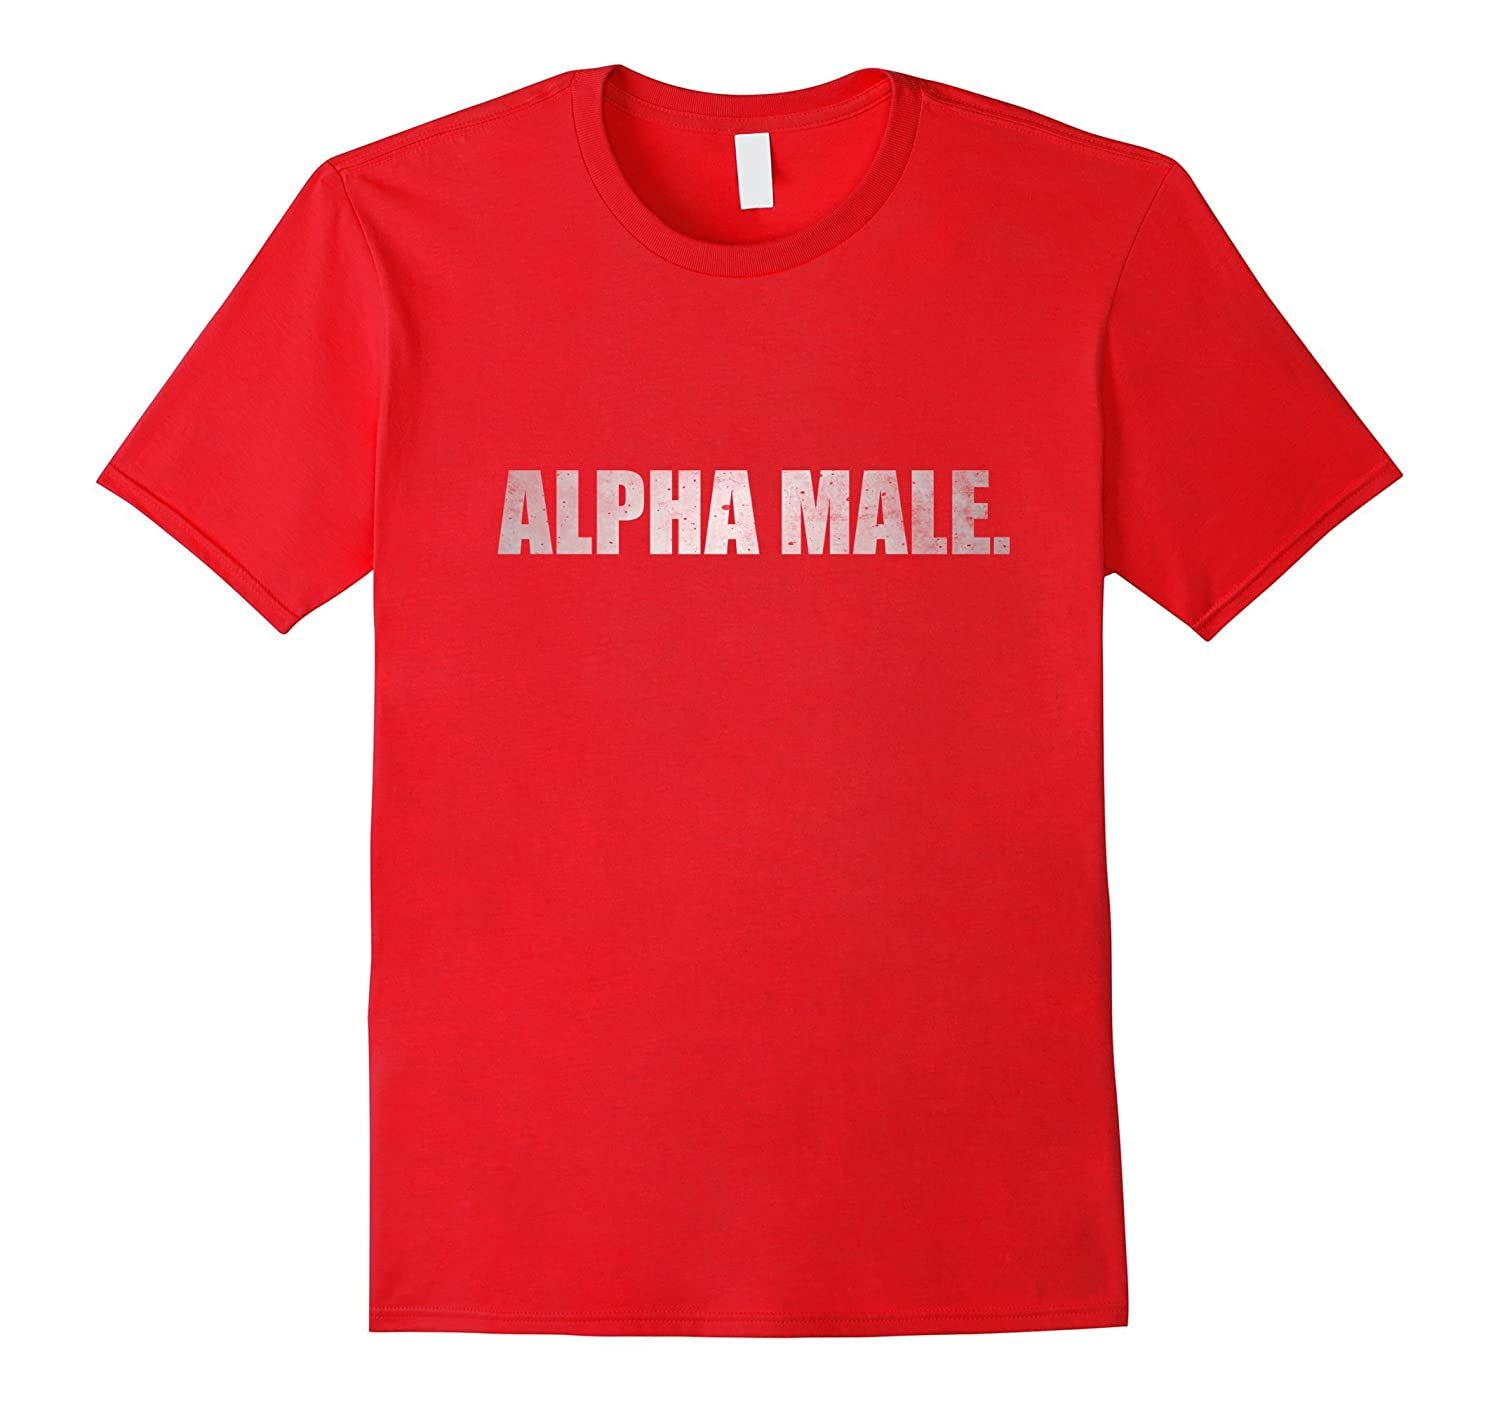 ALPHA MALE T SHIRT Gym Strong Mens Lifting Weights-4LVS